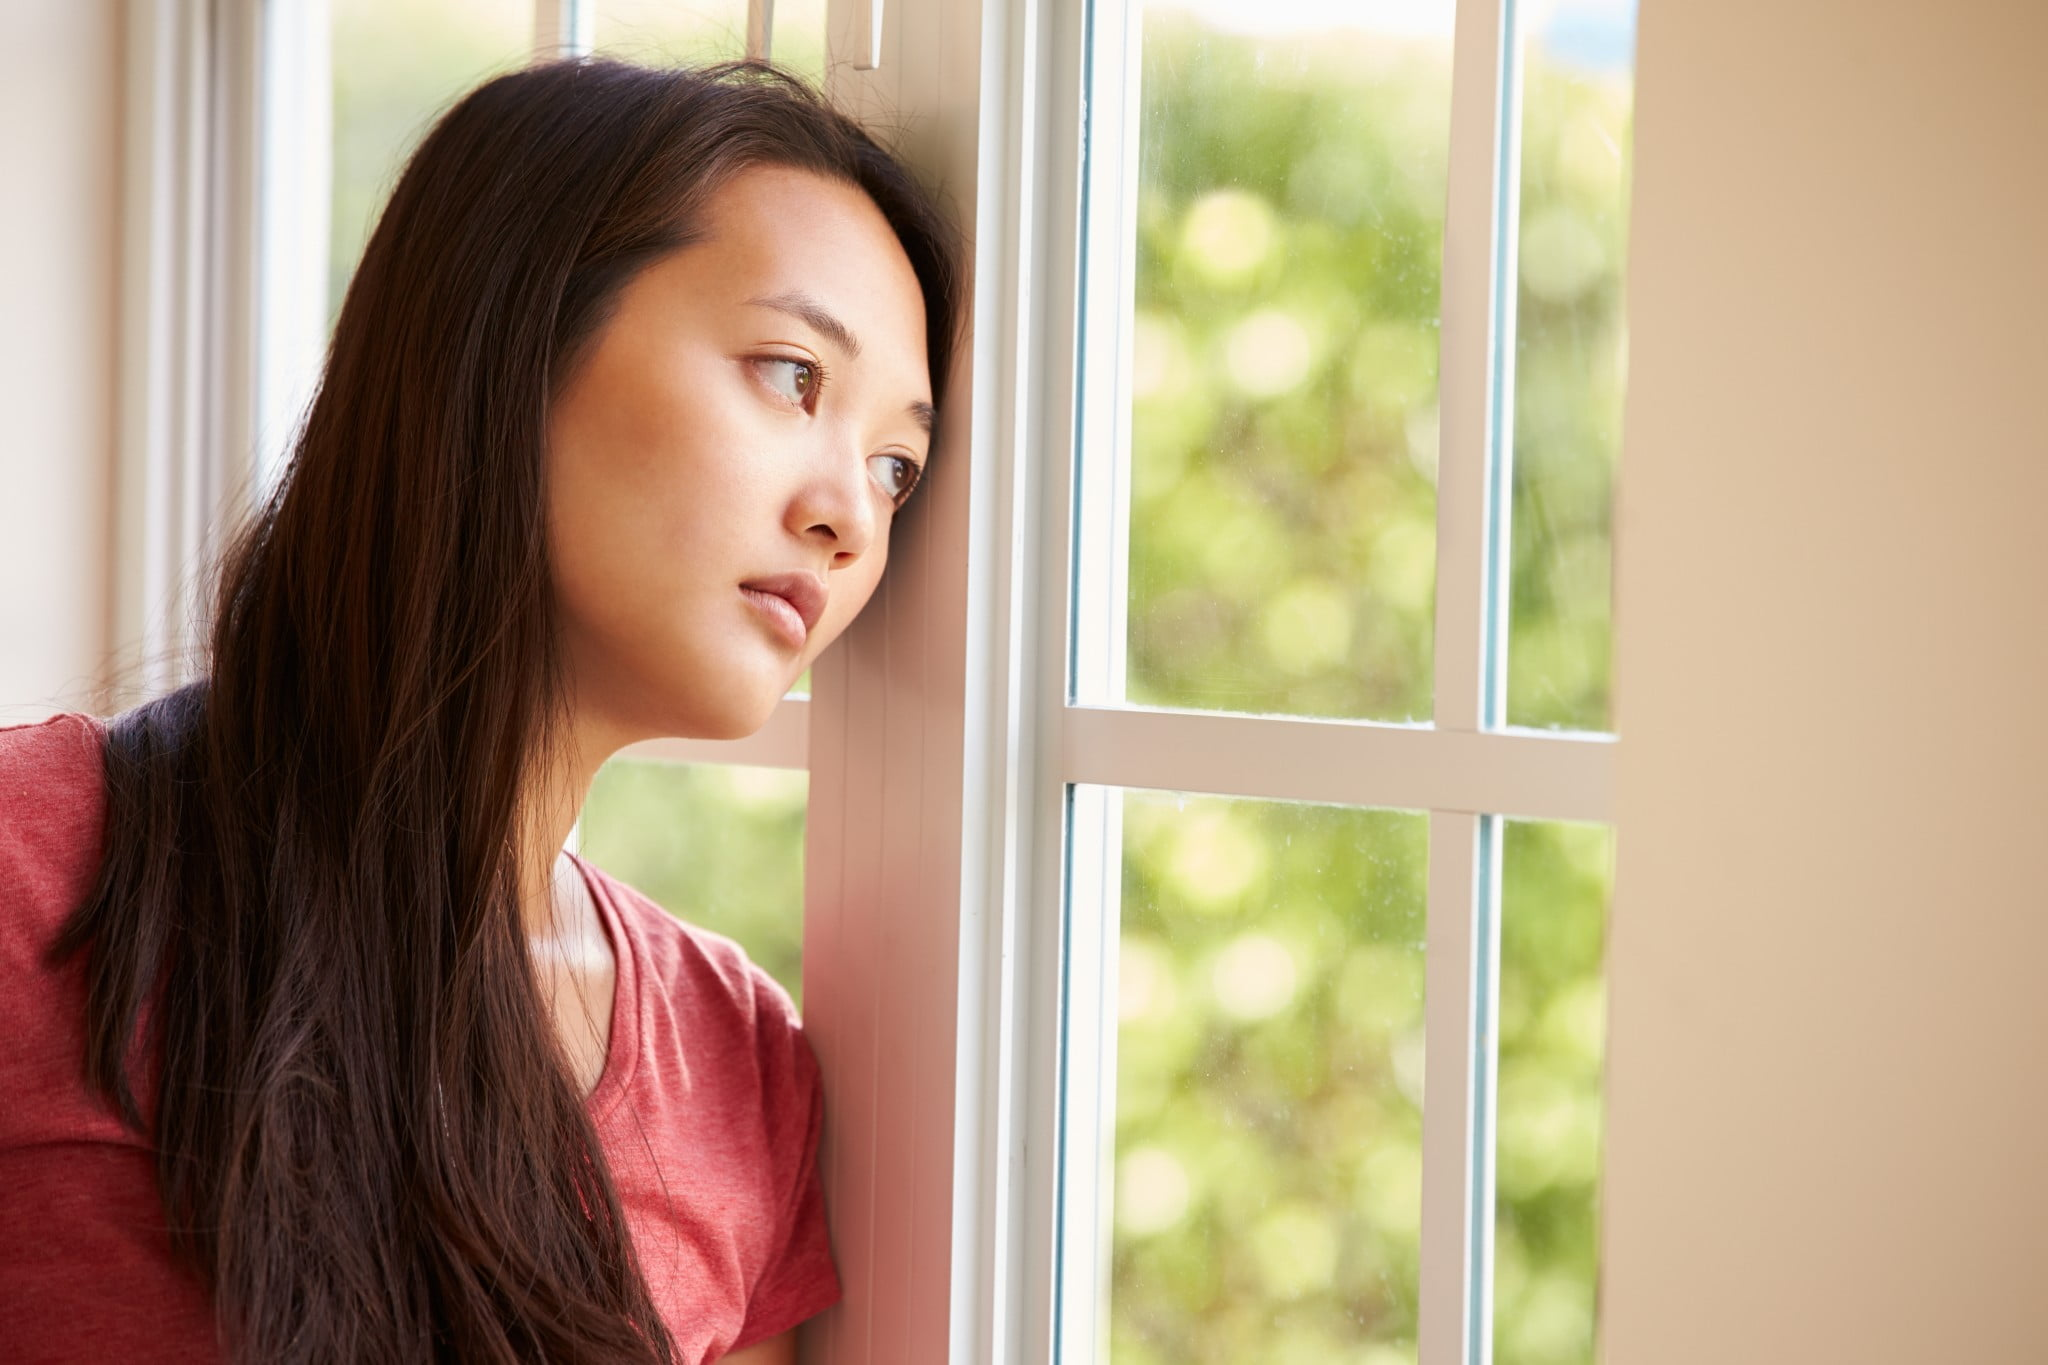 woman gazes out of window